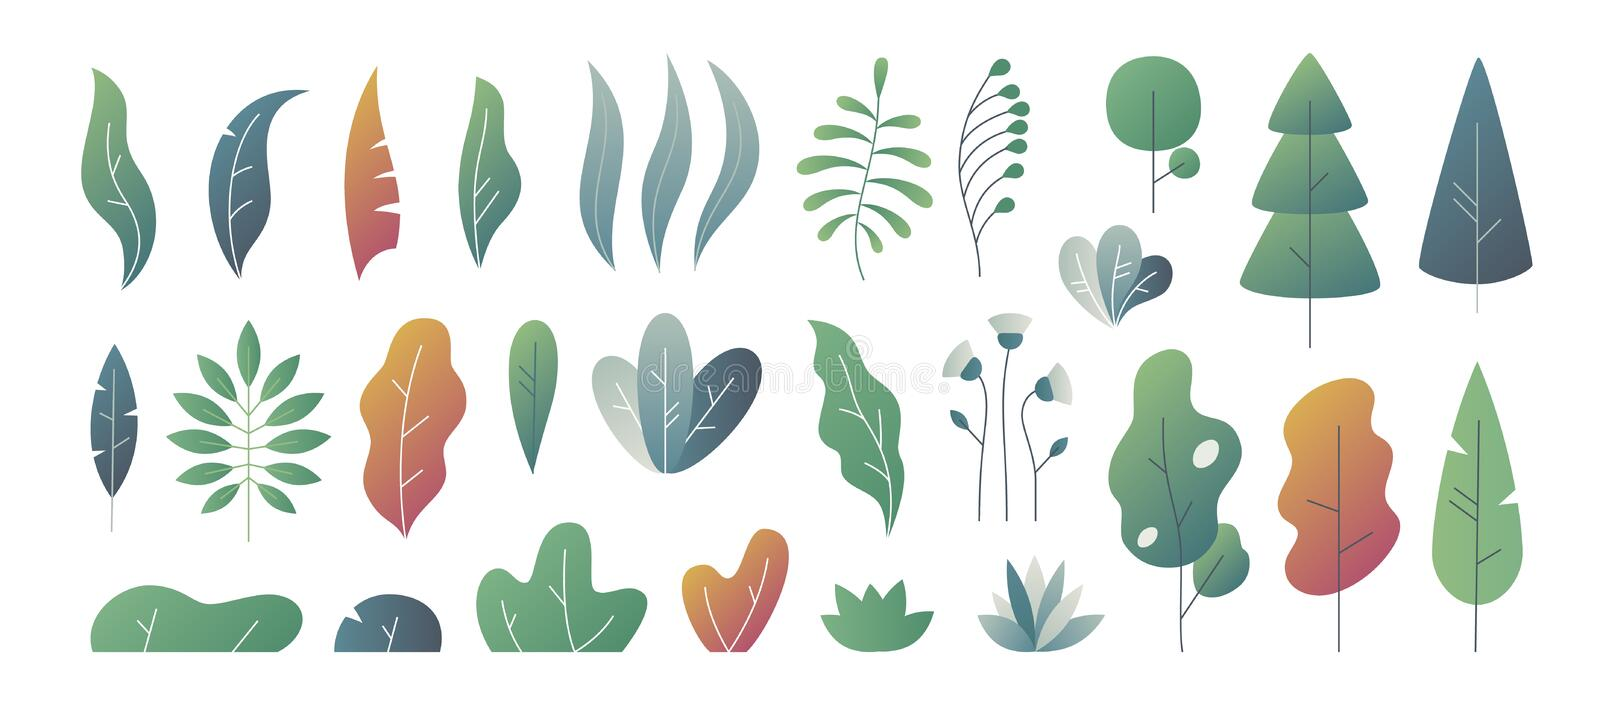 Flat minimal leaves. Fantasy colors gradation, leaves bushes and trees design templates, nature gradient plants. Vector. Cute autumn leaves stock illustration